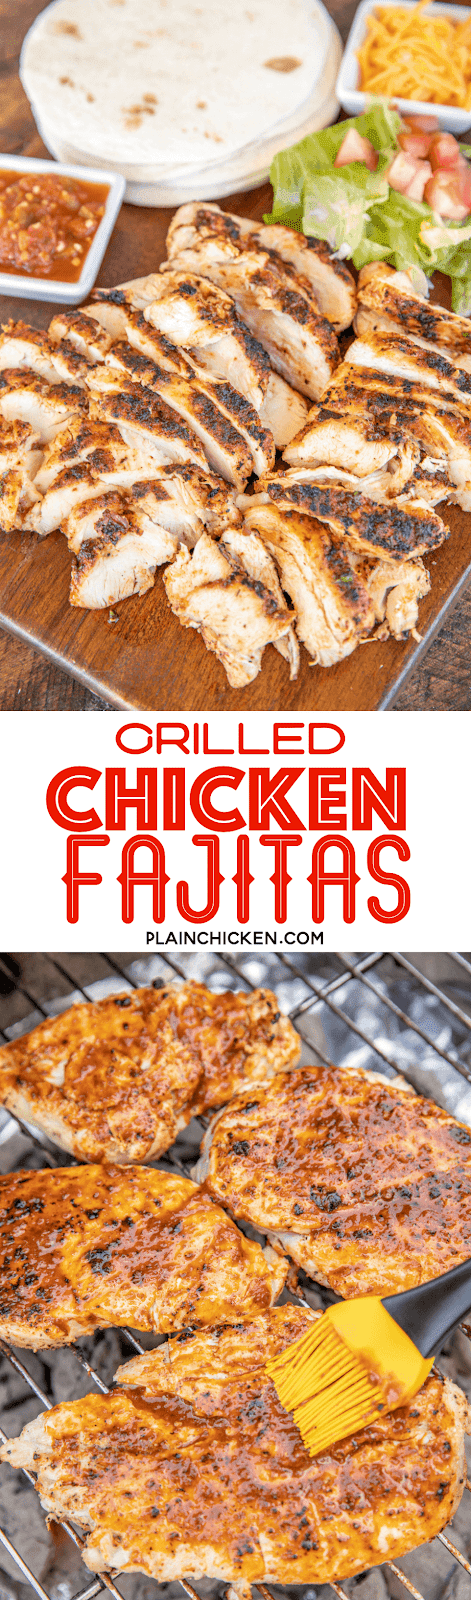 collage of grilled chicken fajitas